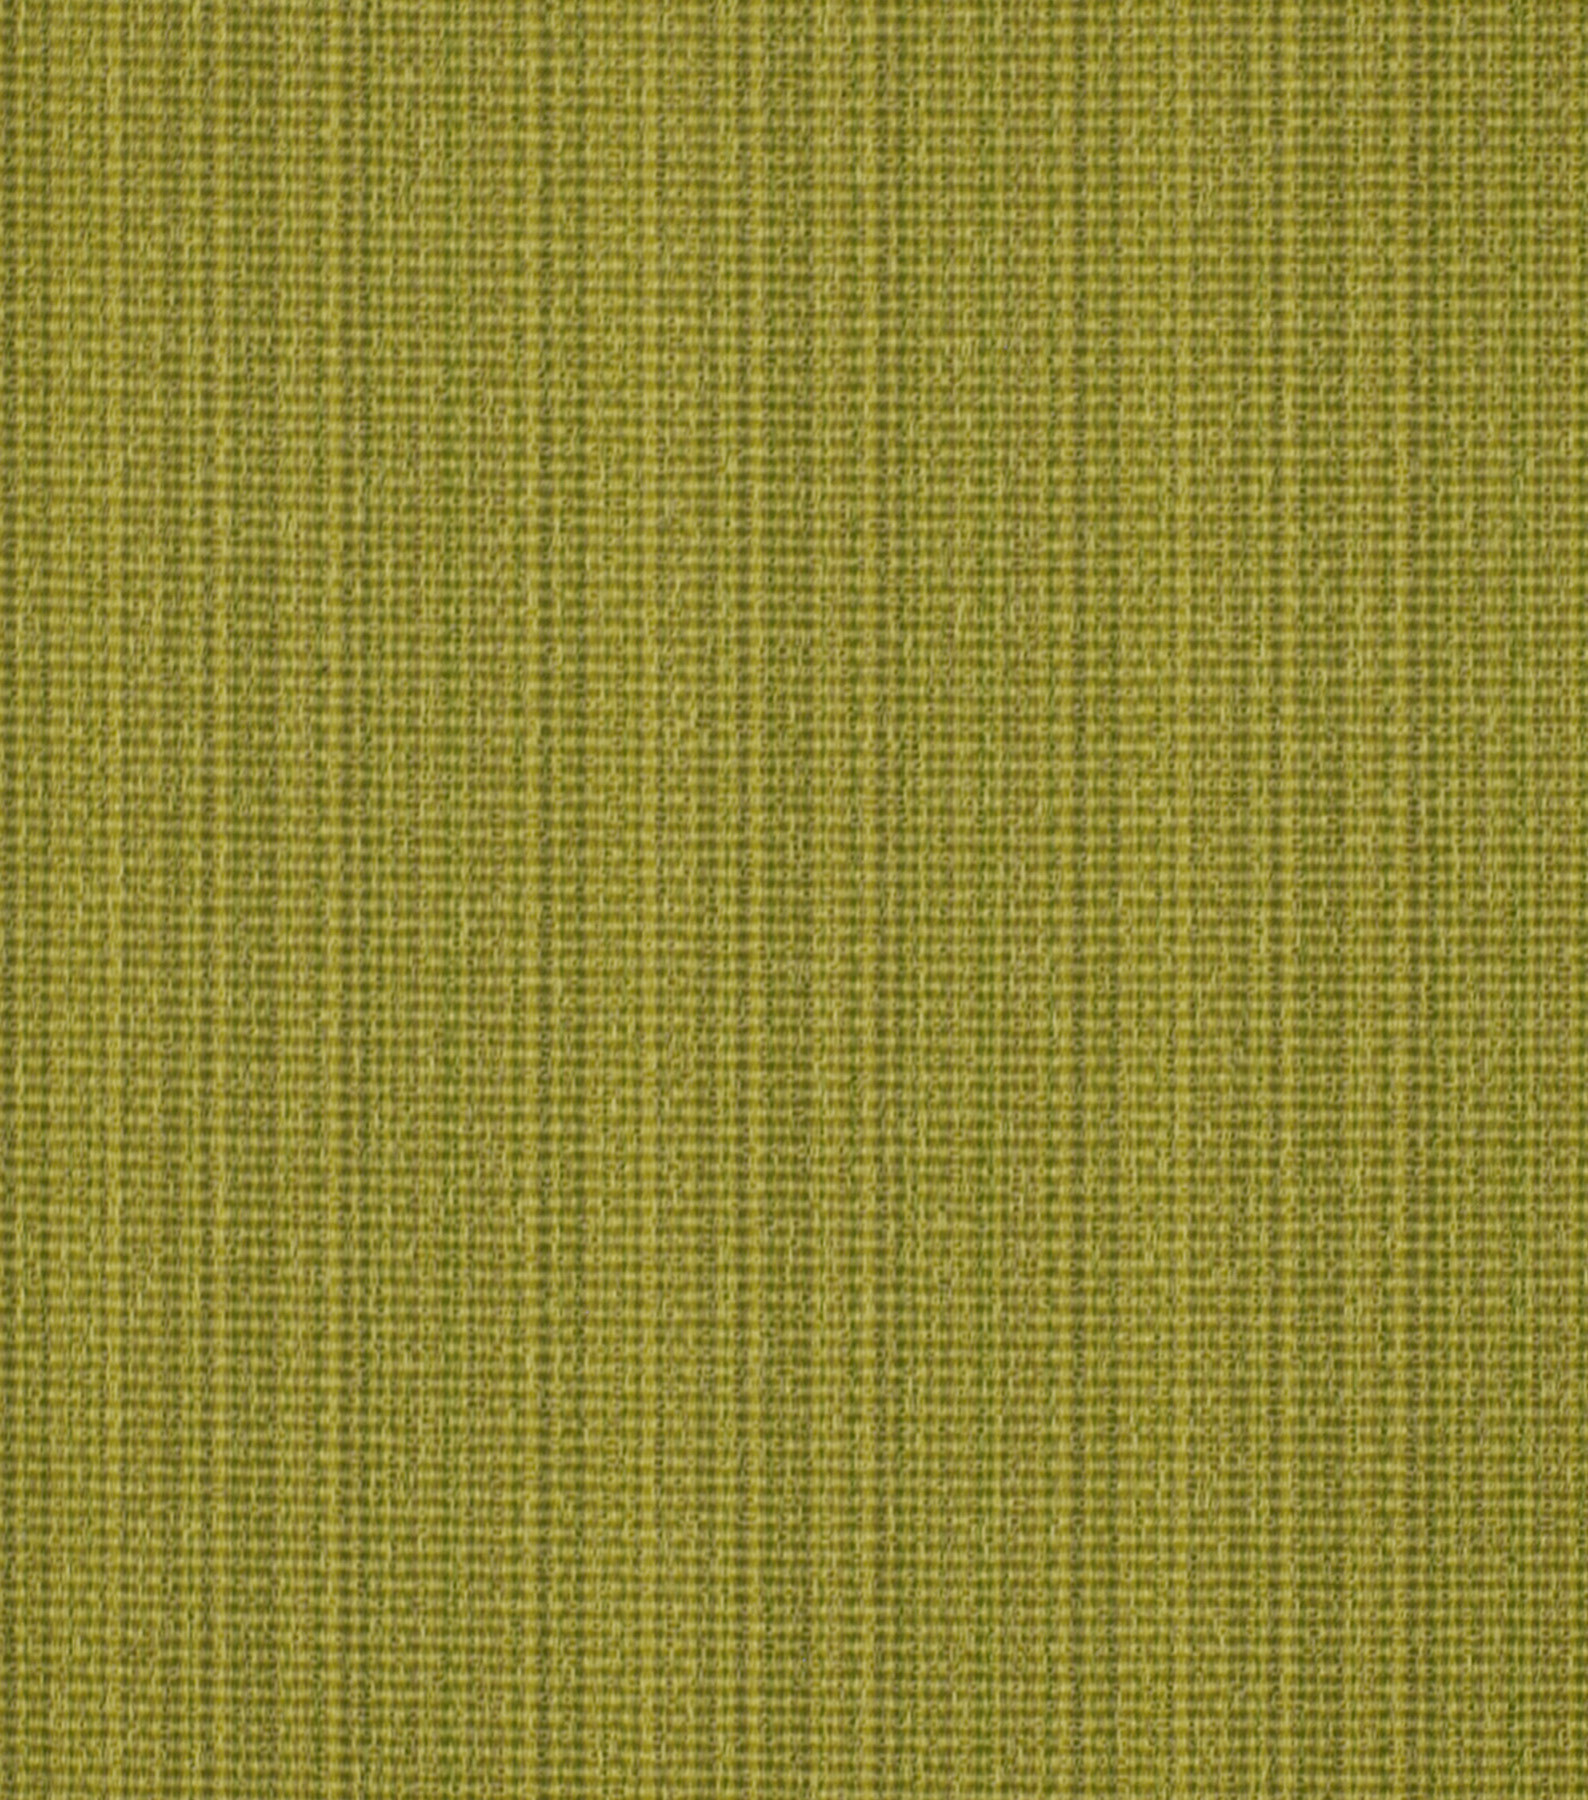 Home Decor 8\u0022x8\u0022 Fabric Swatch-Signature Series Run Along Kiwi